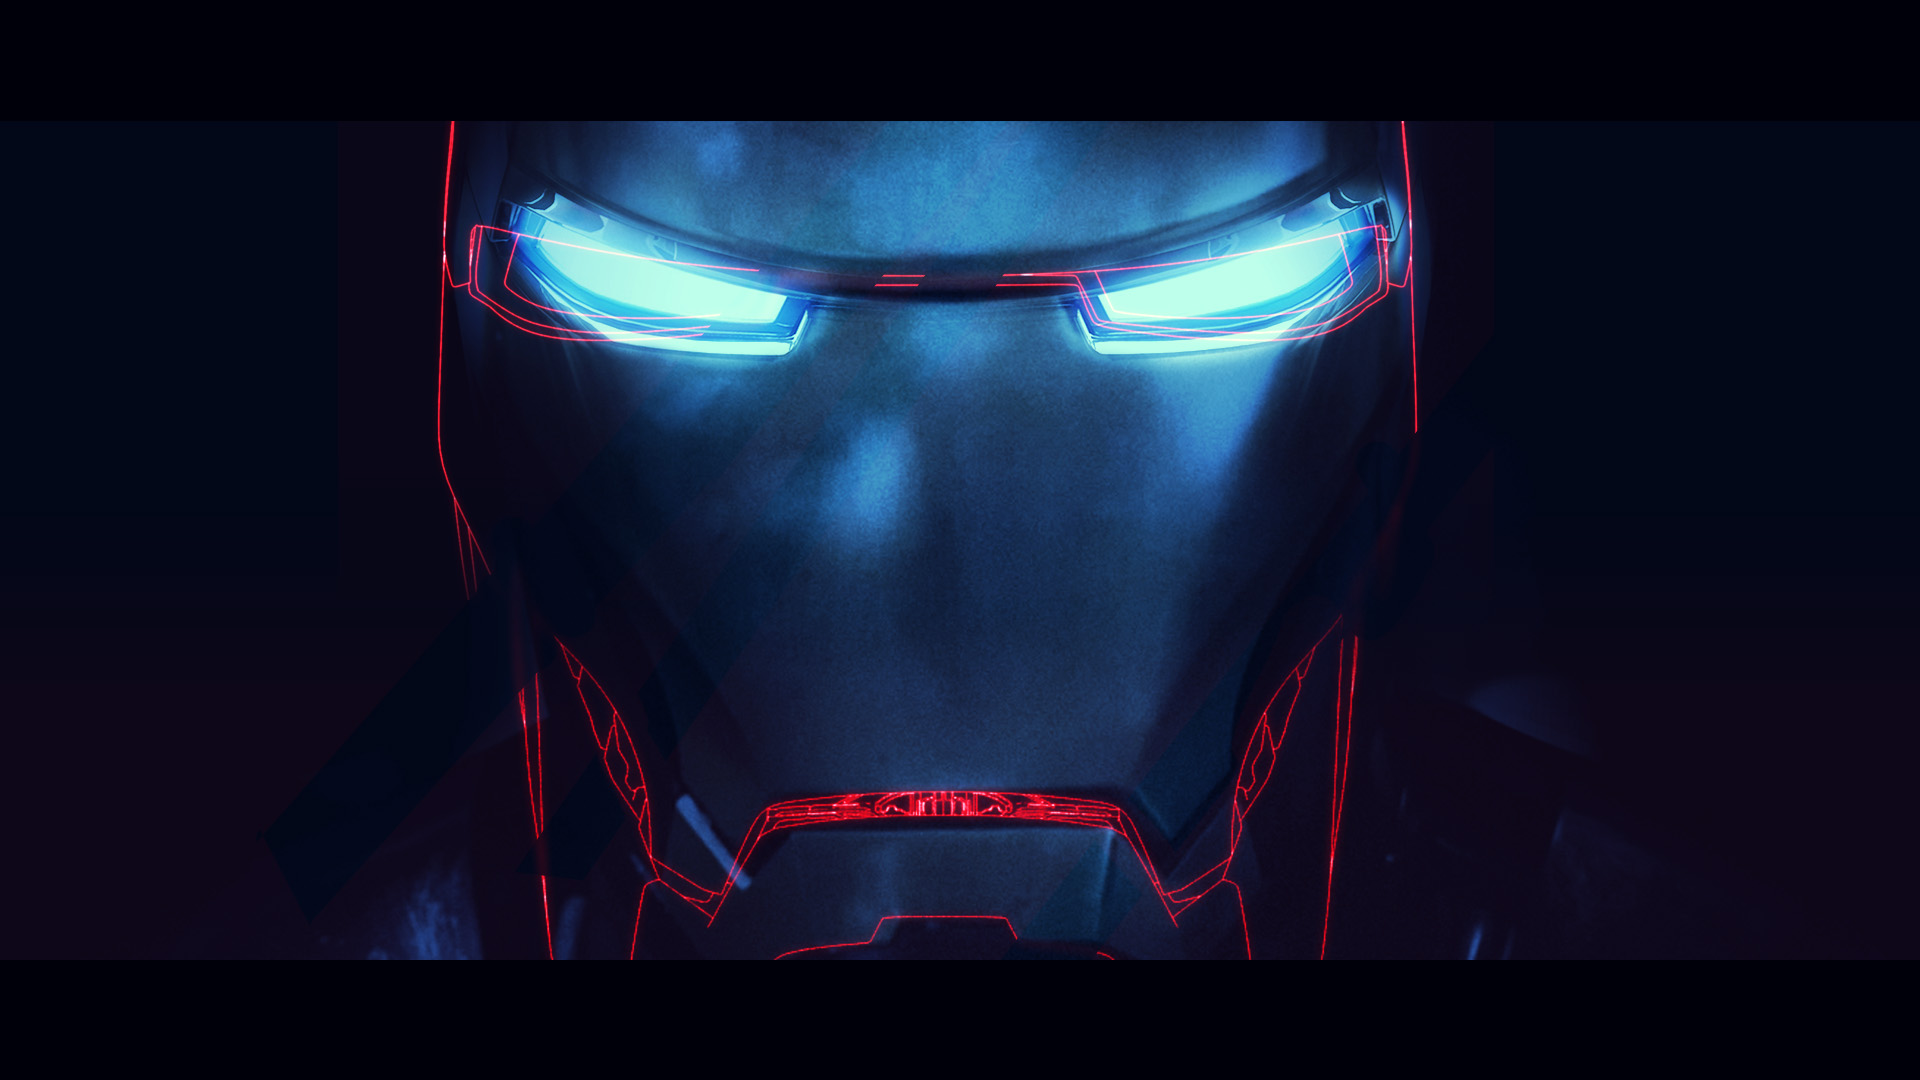 800x384 Dark Wallpaper: Iron Man 3 Full HD Wallpaper And Background Image